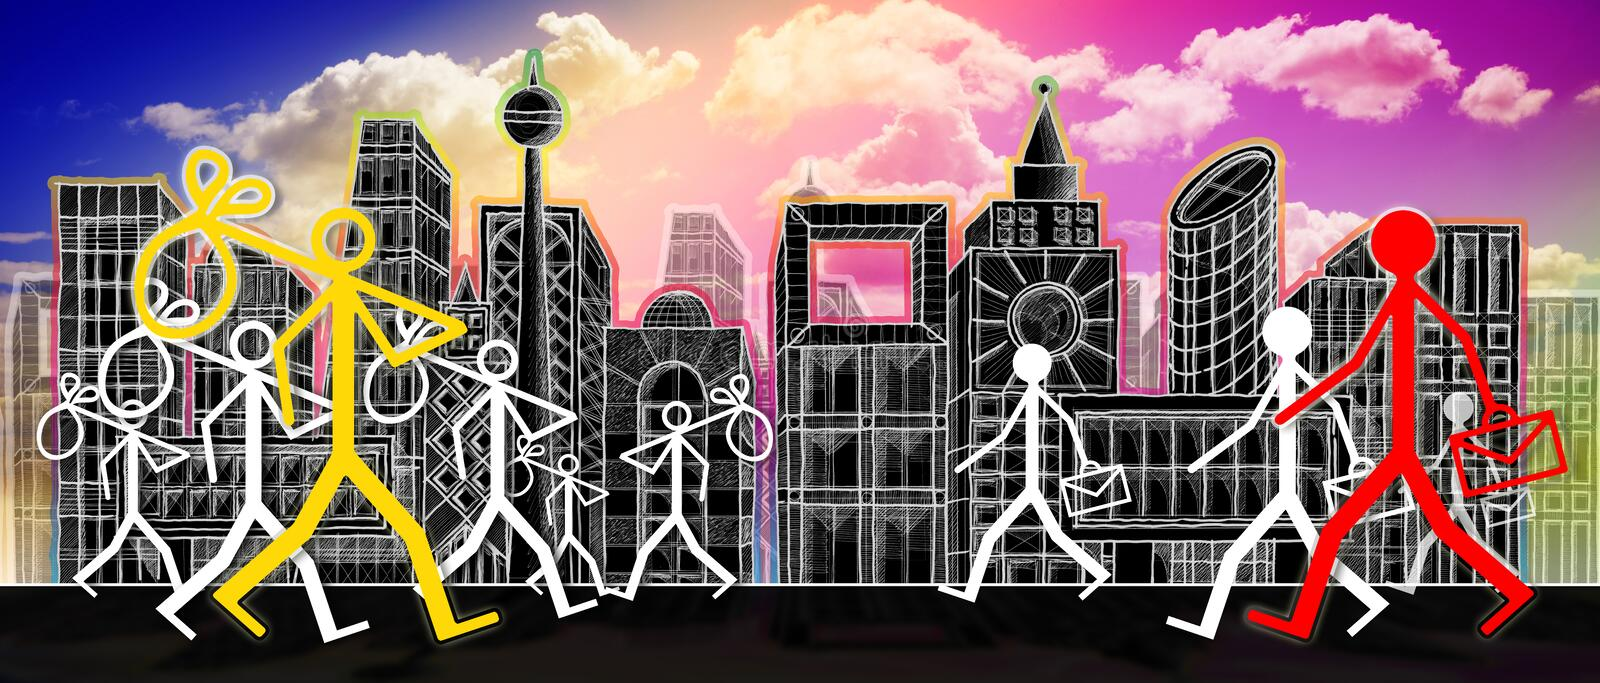 Employment and unemployment: out of work job search - concept image on city background.  royalty free illustration